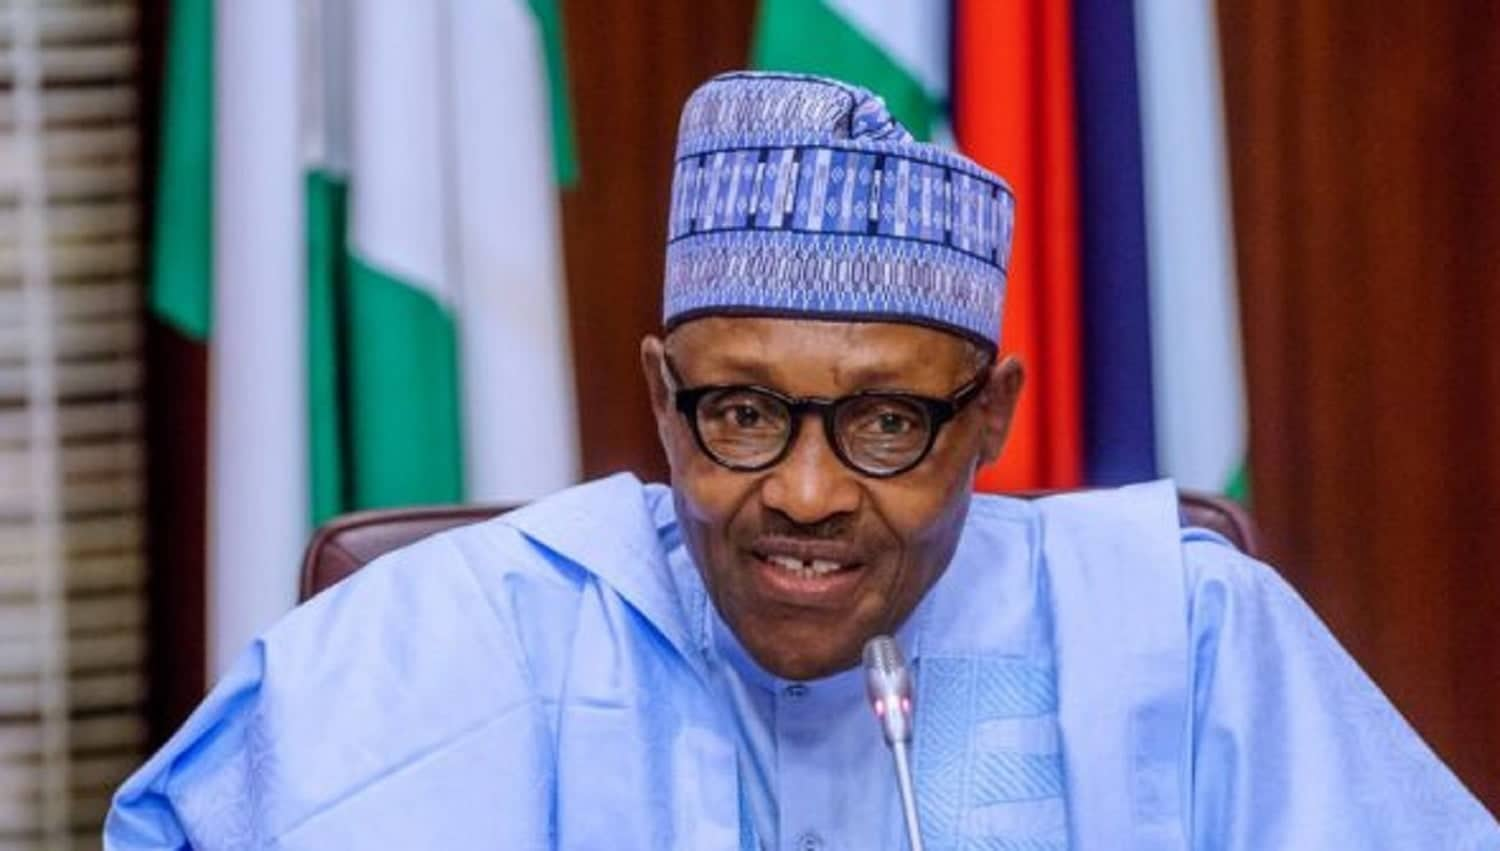 President Muhammadu Buhari Has Given Directive For The Protection Of Staff Salaries, Pensions Of Retirees And Statutory Transfer In Spite The Challenge Posed By Covid 19 That Has Affected The Economy. The Minister Of Finance, Budget And National Planning, Mrs Zainab Ahmed, Disclosed